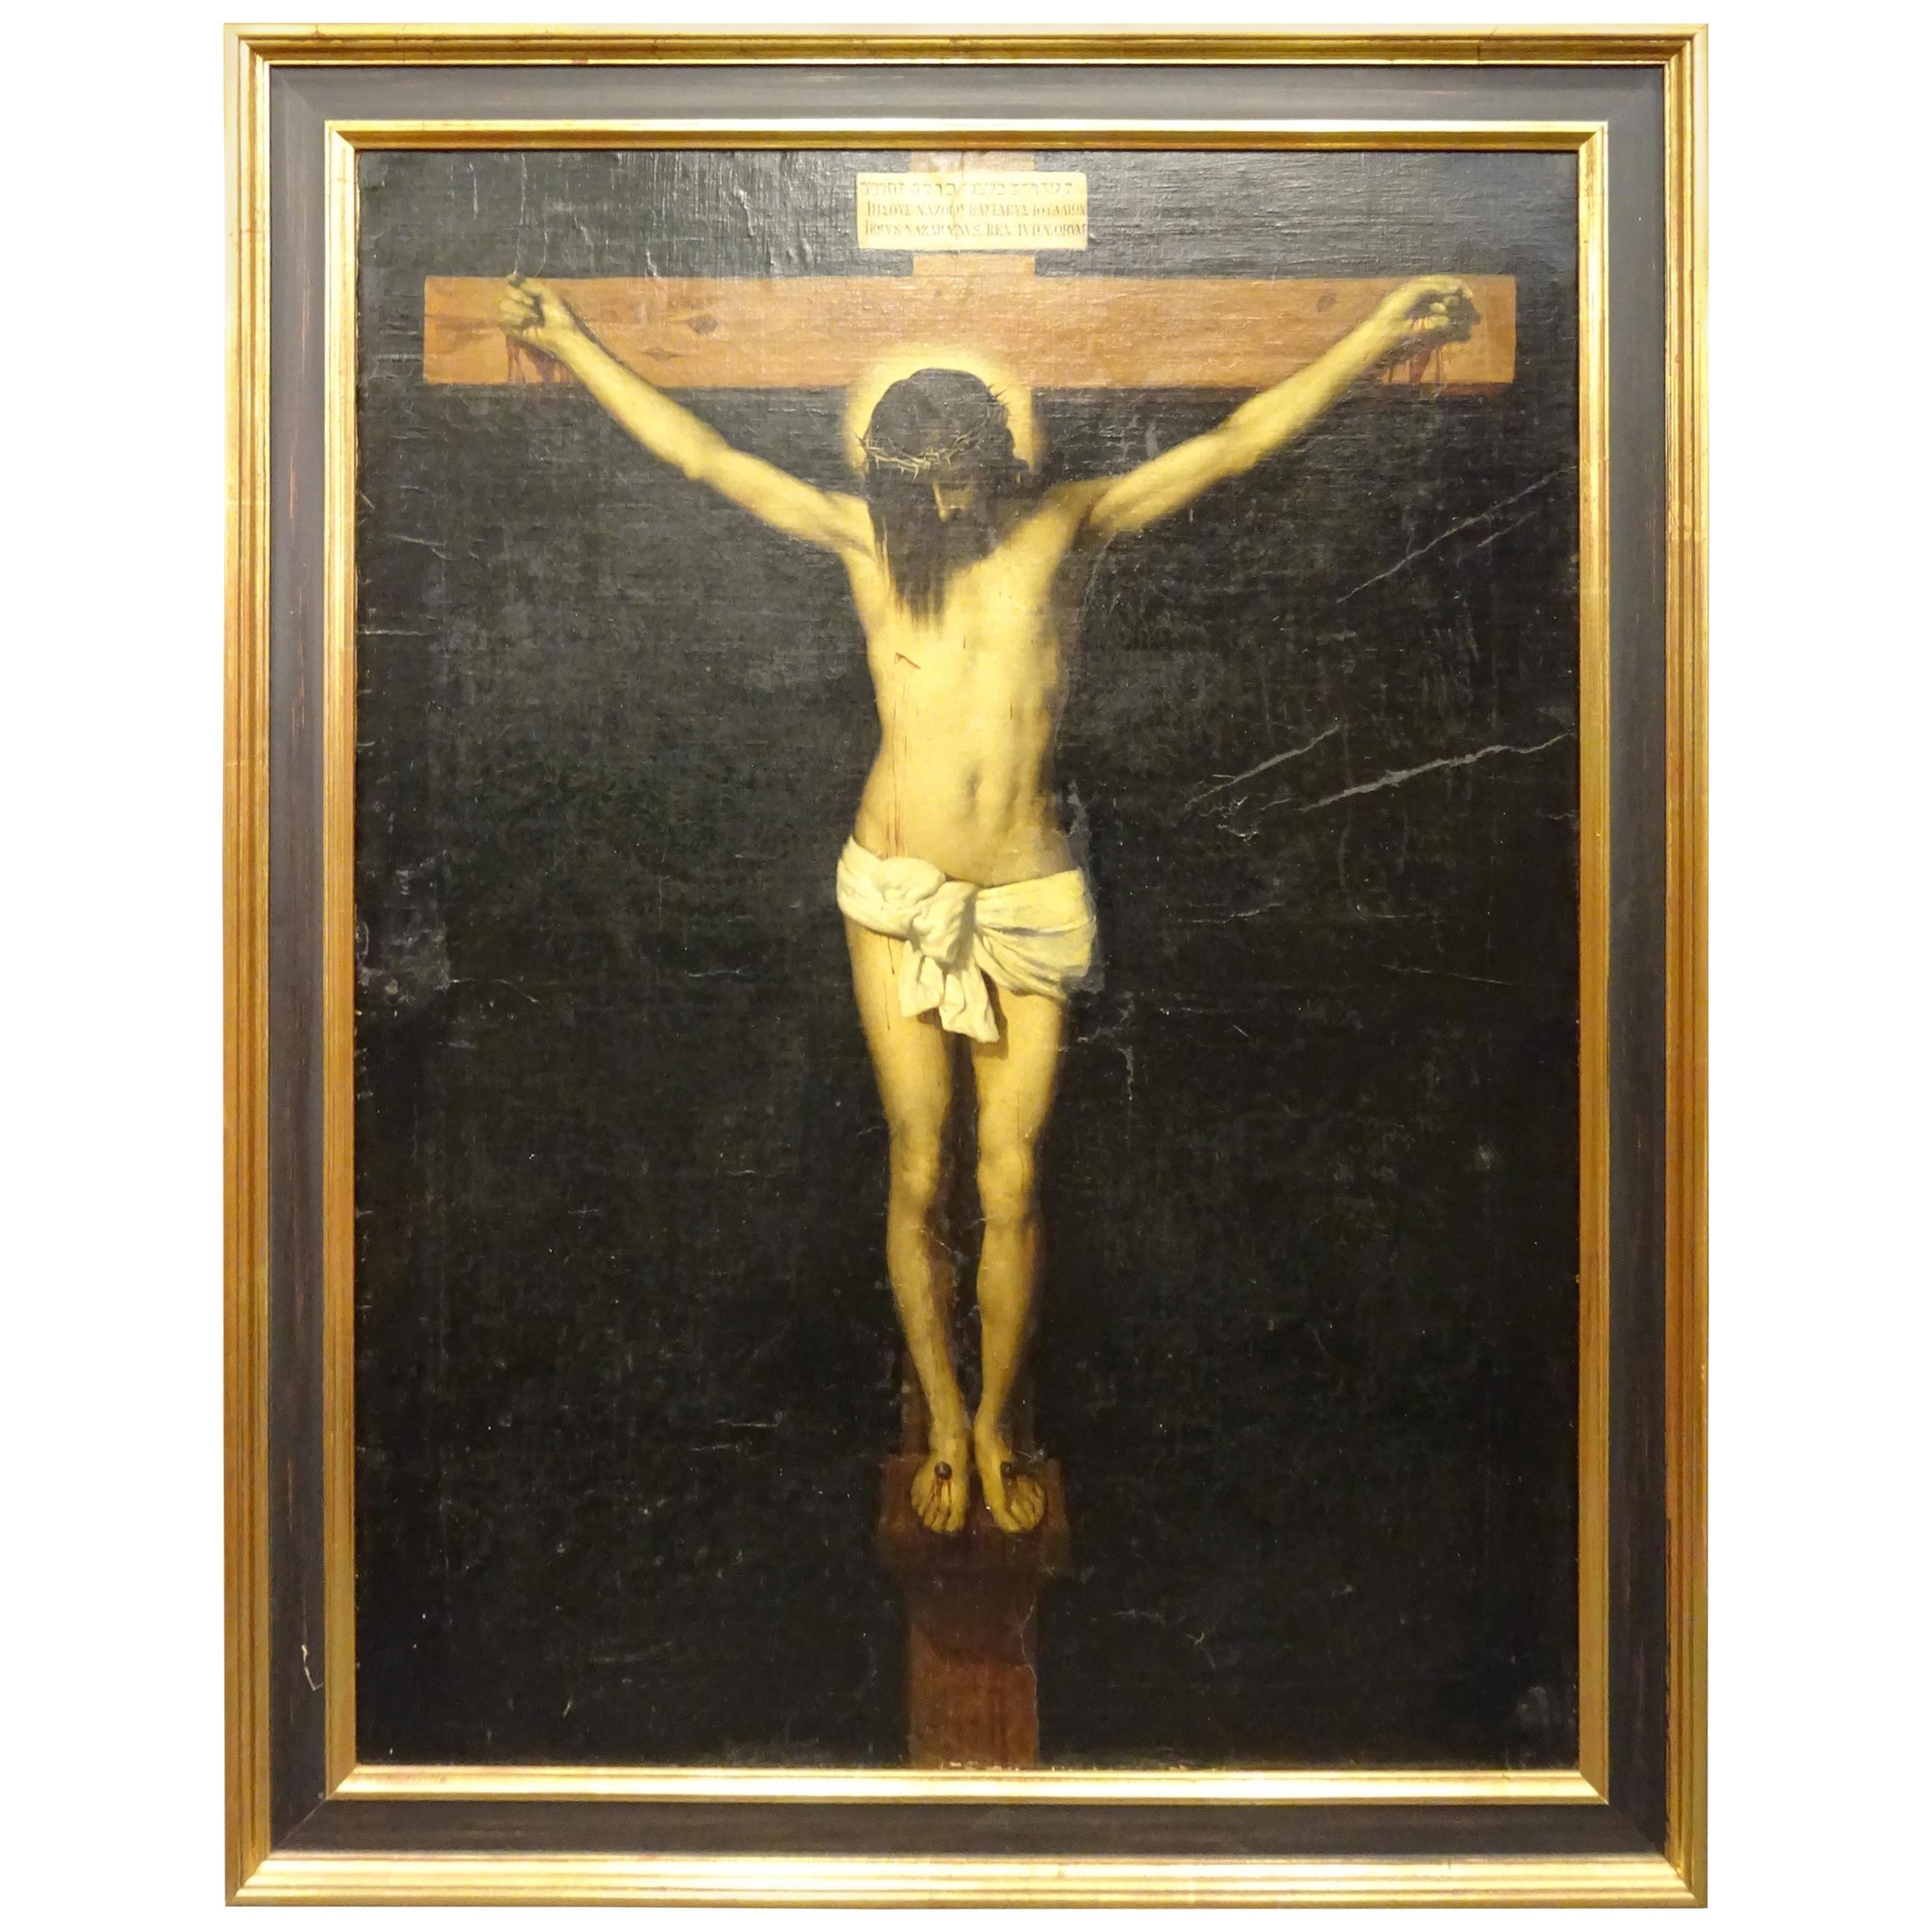 19th Century after Spanish Painter Velazquez Christ Oil on Canvas and Wood Frame